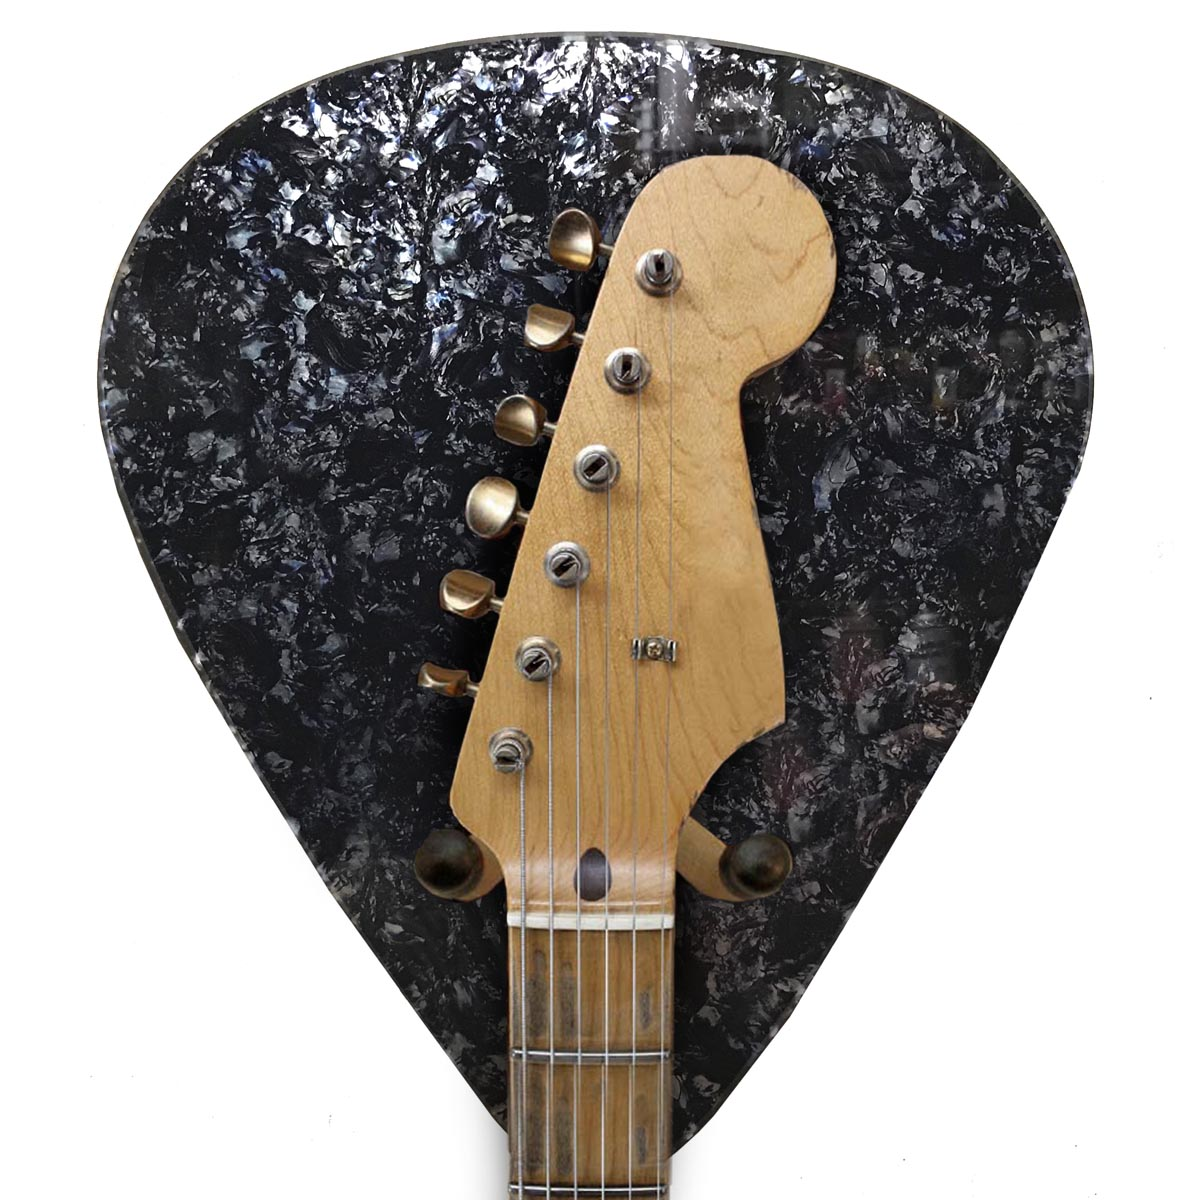 Axetreme Pick Guitar Wall Hanger™ - Includes String Swing Hanger - Black Abalone